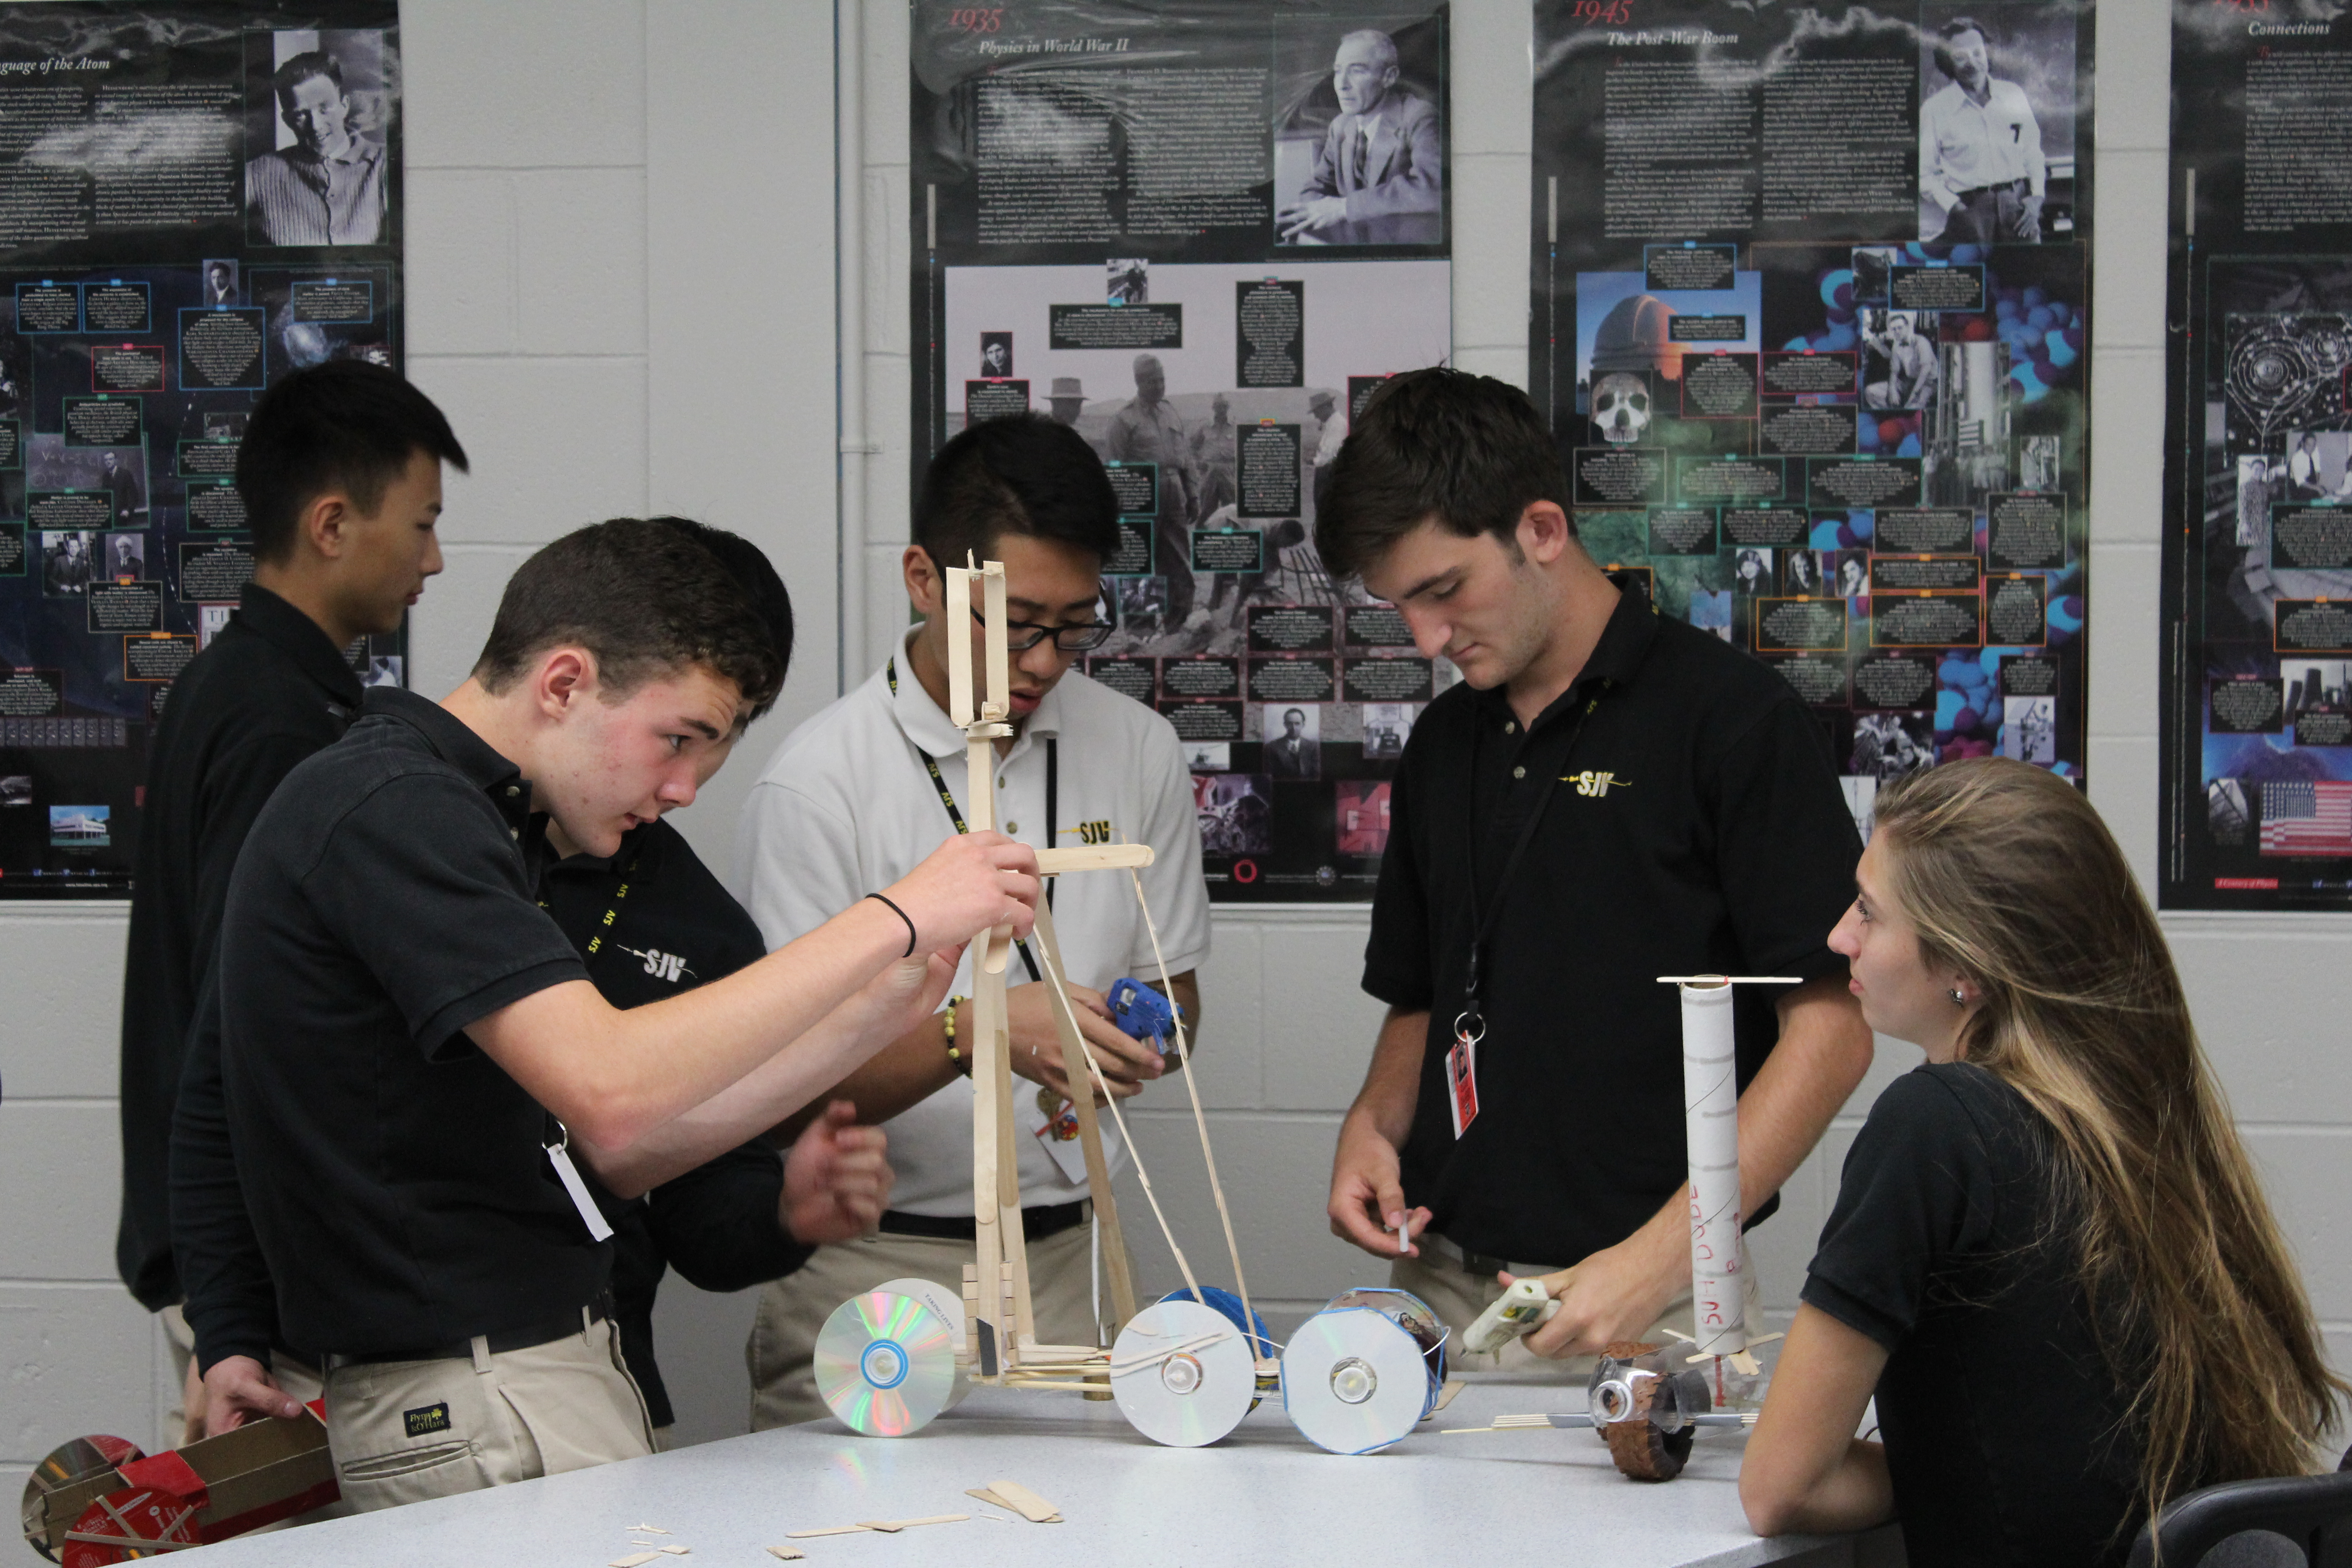 Group of Students Performing Physics Experiment at Table